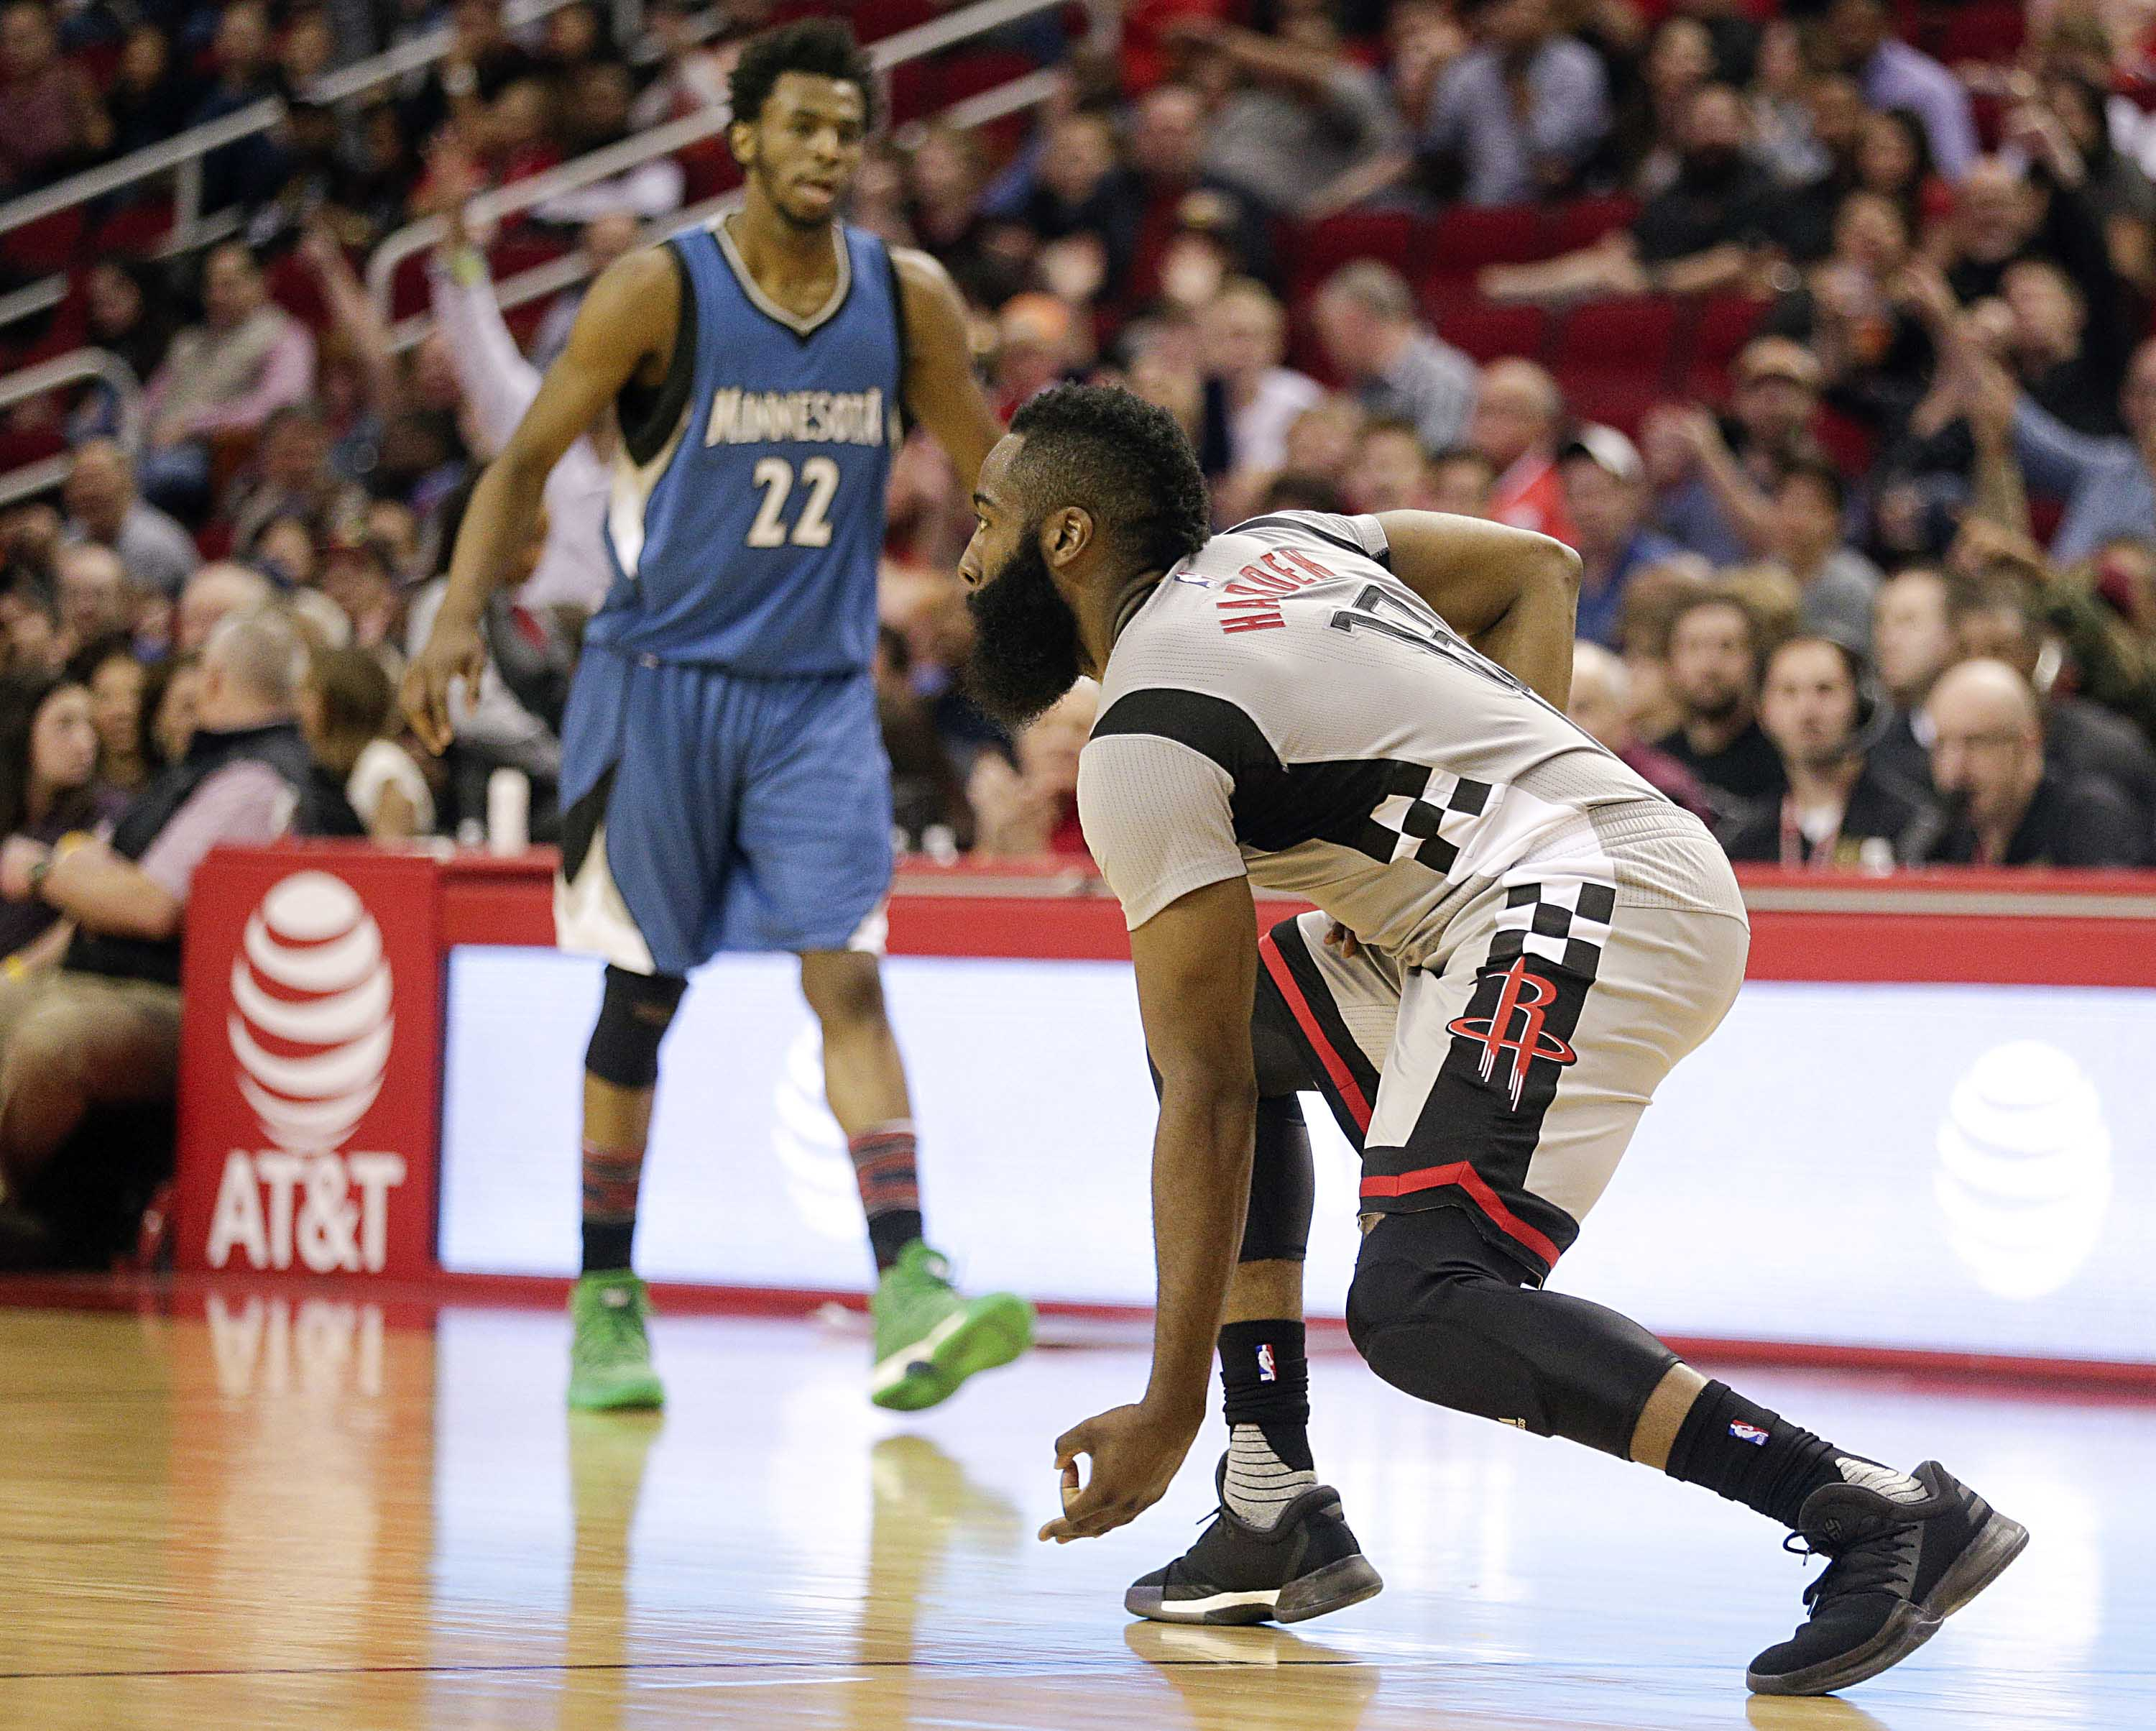 9901214-nba-minnesota-timberwolves-at-houston-rockets